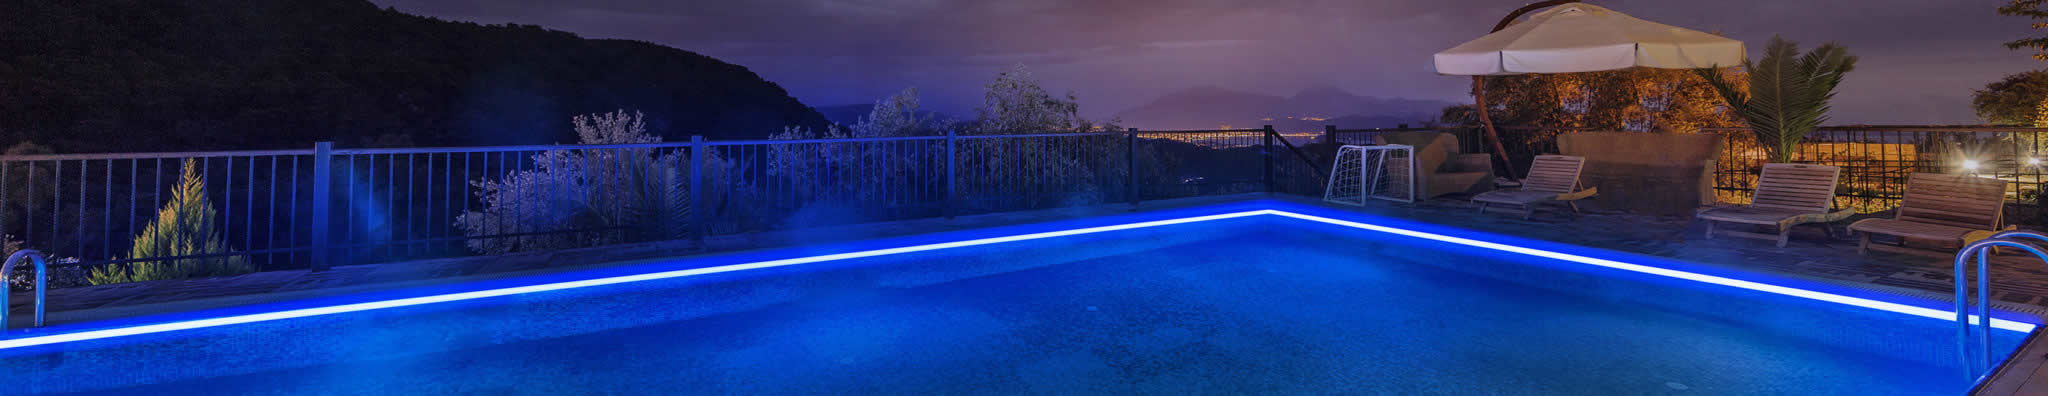 Let LED lighting fill your outdoor space with joie de vivre!